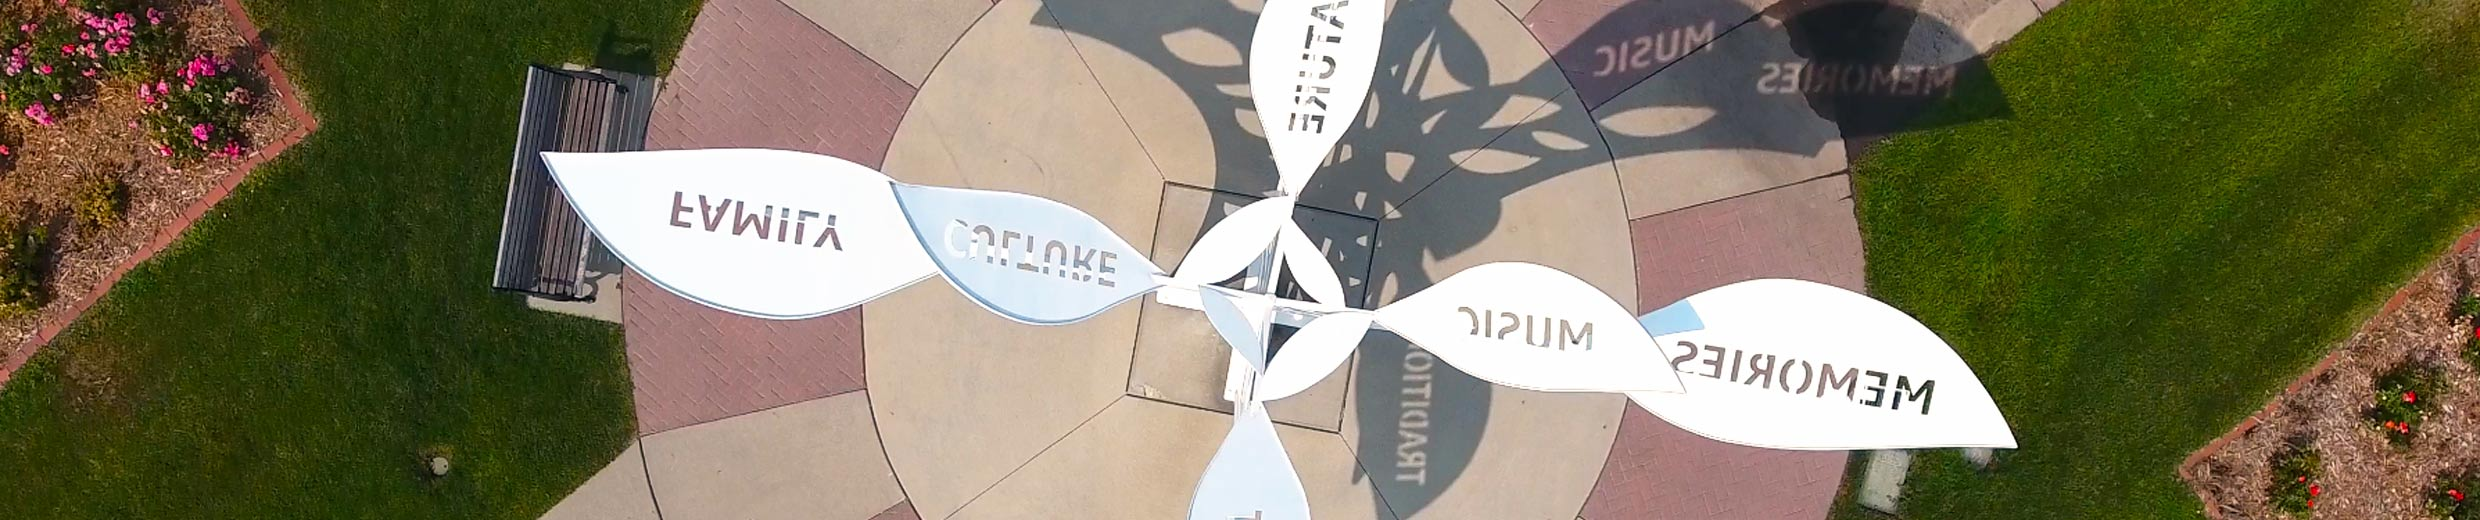 Sculpture-web-banner